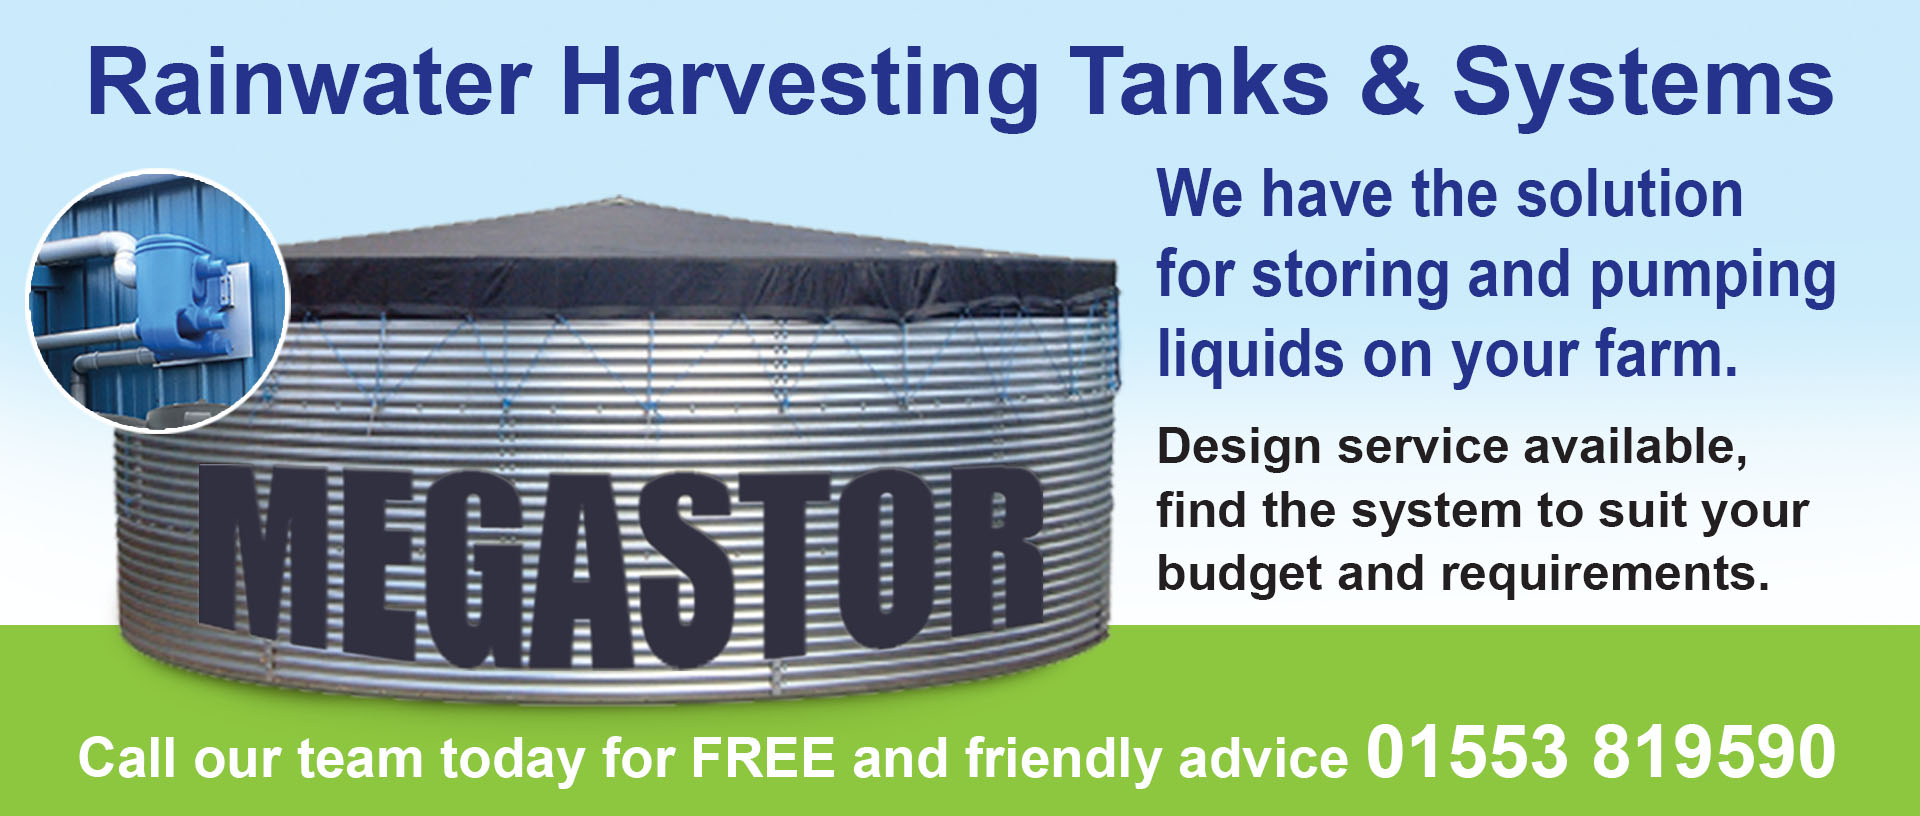 Free delivery on every order!